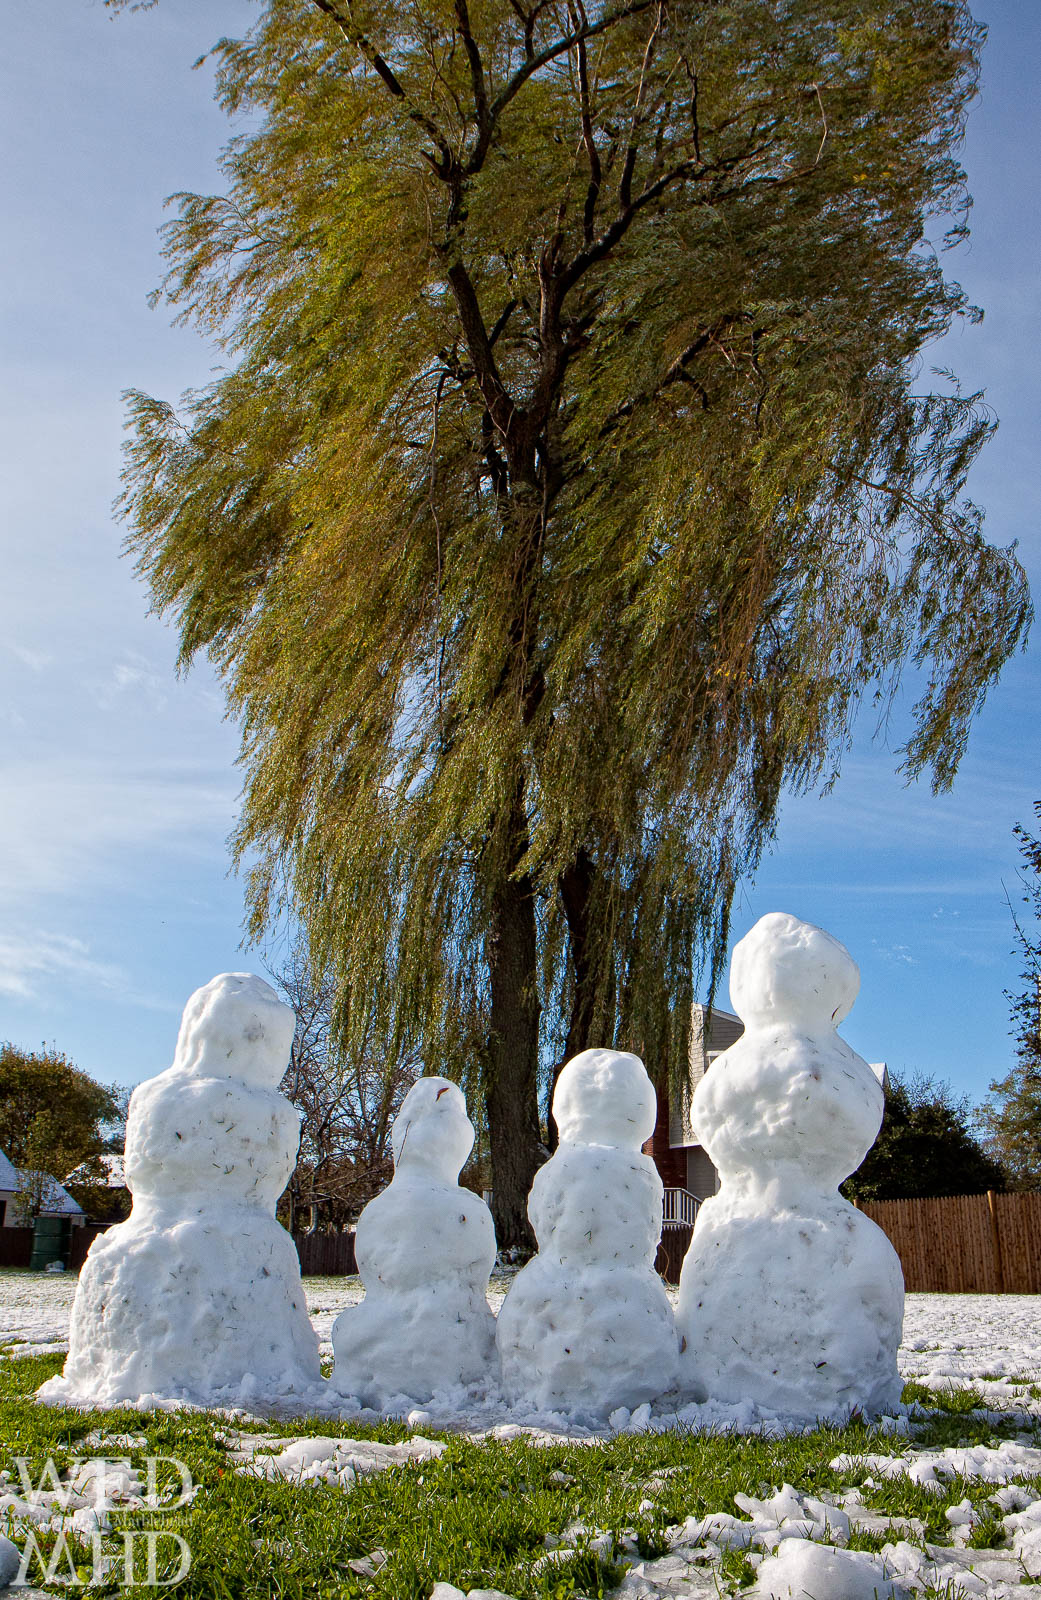 A Snow Family in Snowctober